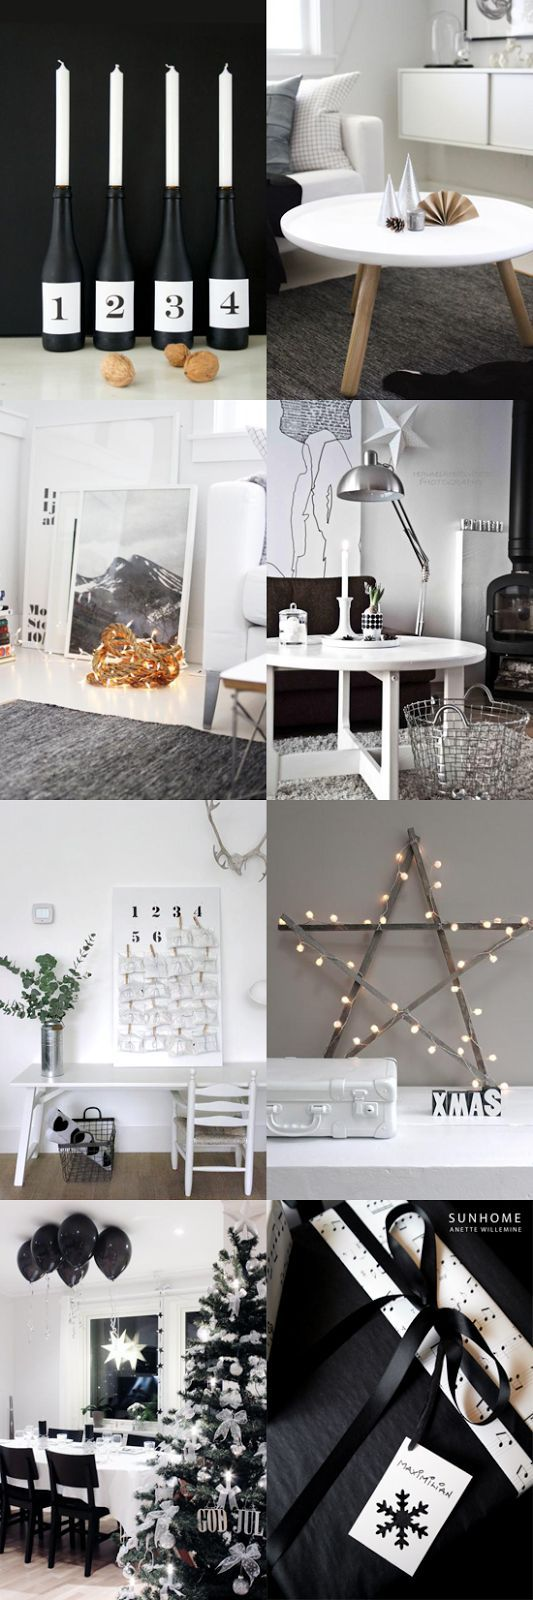 ... Christmas, Black White, Nordic Christmas, Christmas Chic, Christmas Minimalist Christmas decor ideas - visit diychristmasdecorations.net for more minimalist christmas decor ideas.